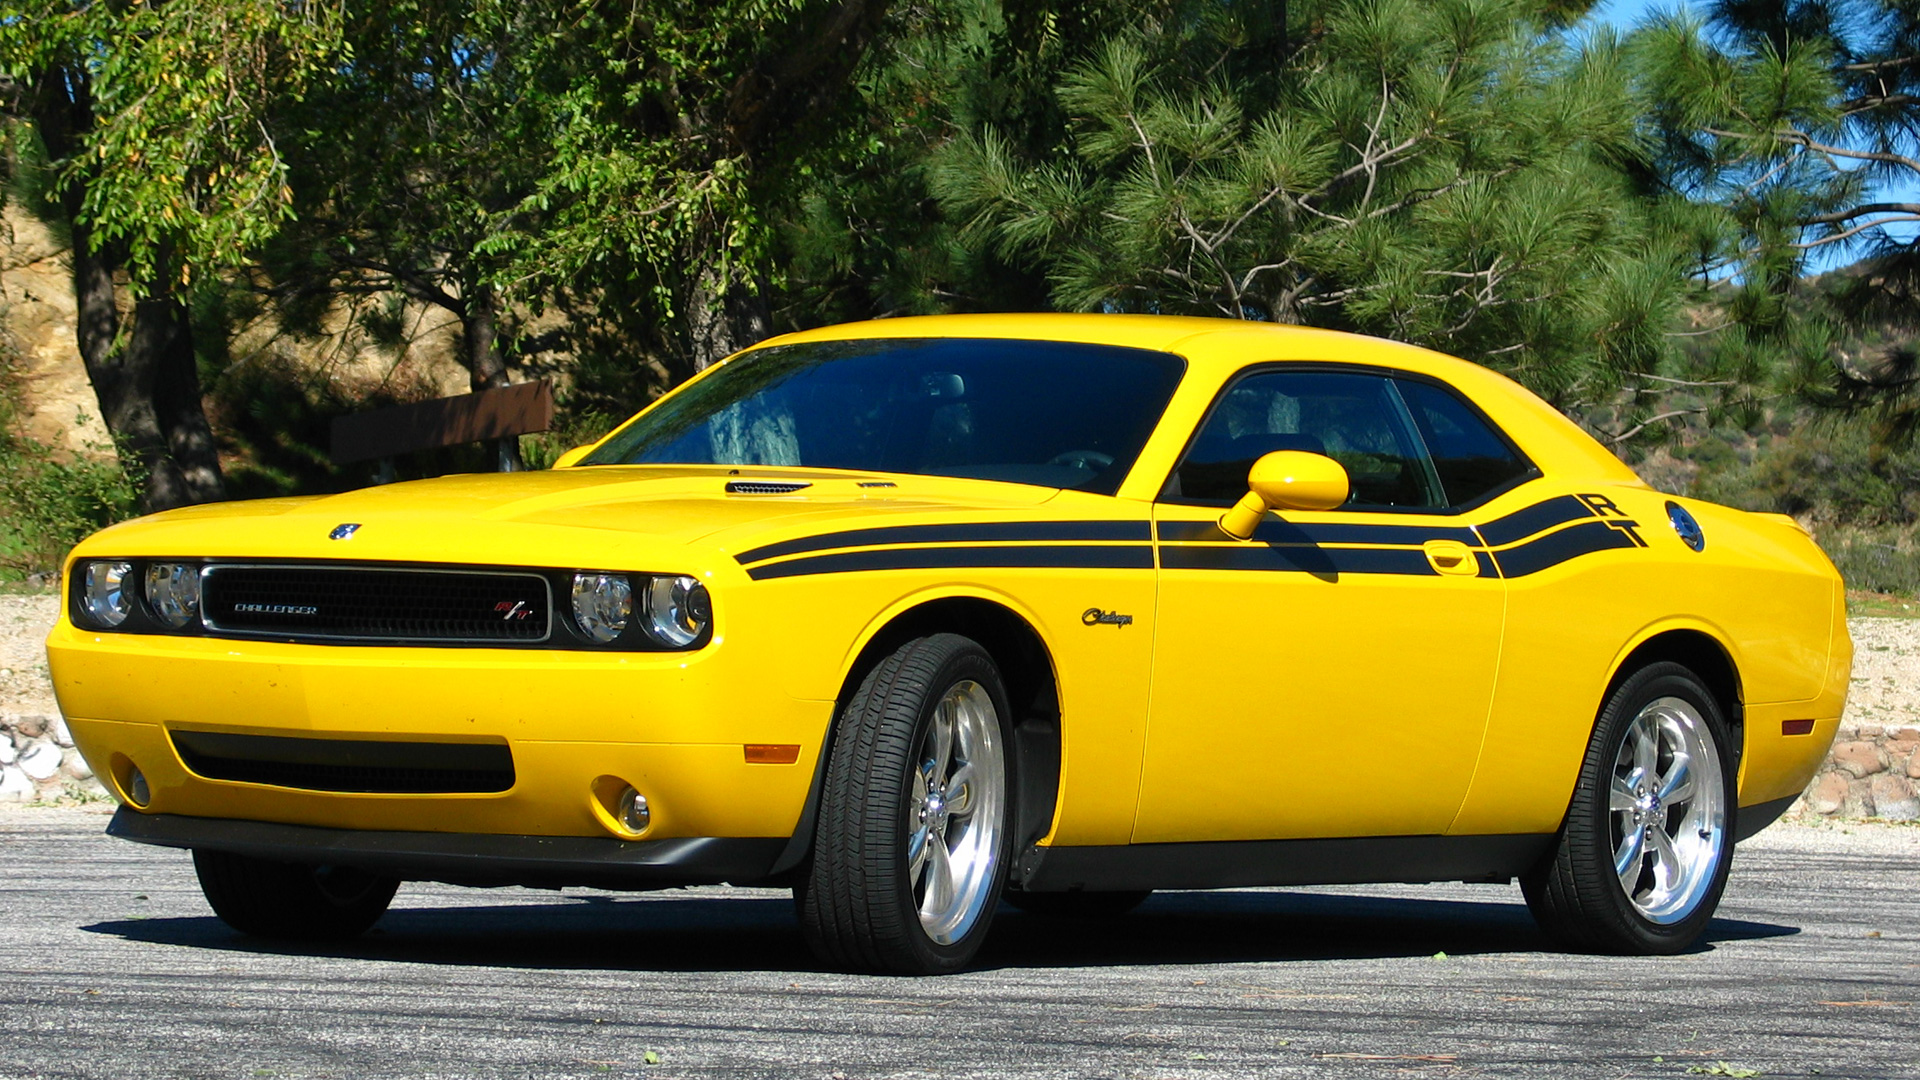 2017 Dodge Challenger RT photo - 4